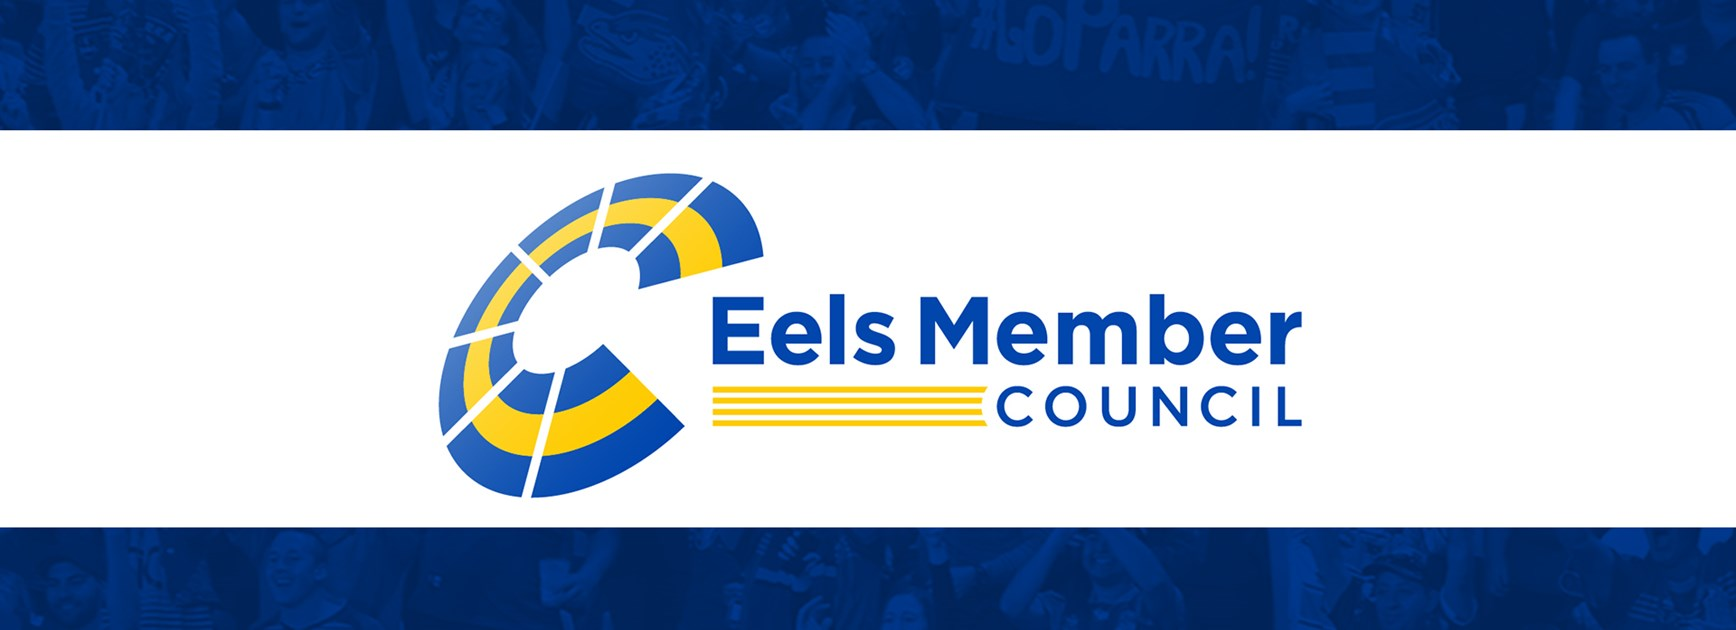 The Eels Member Council